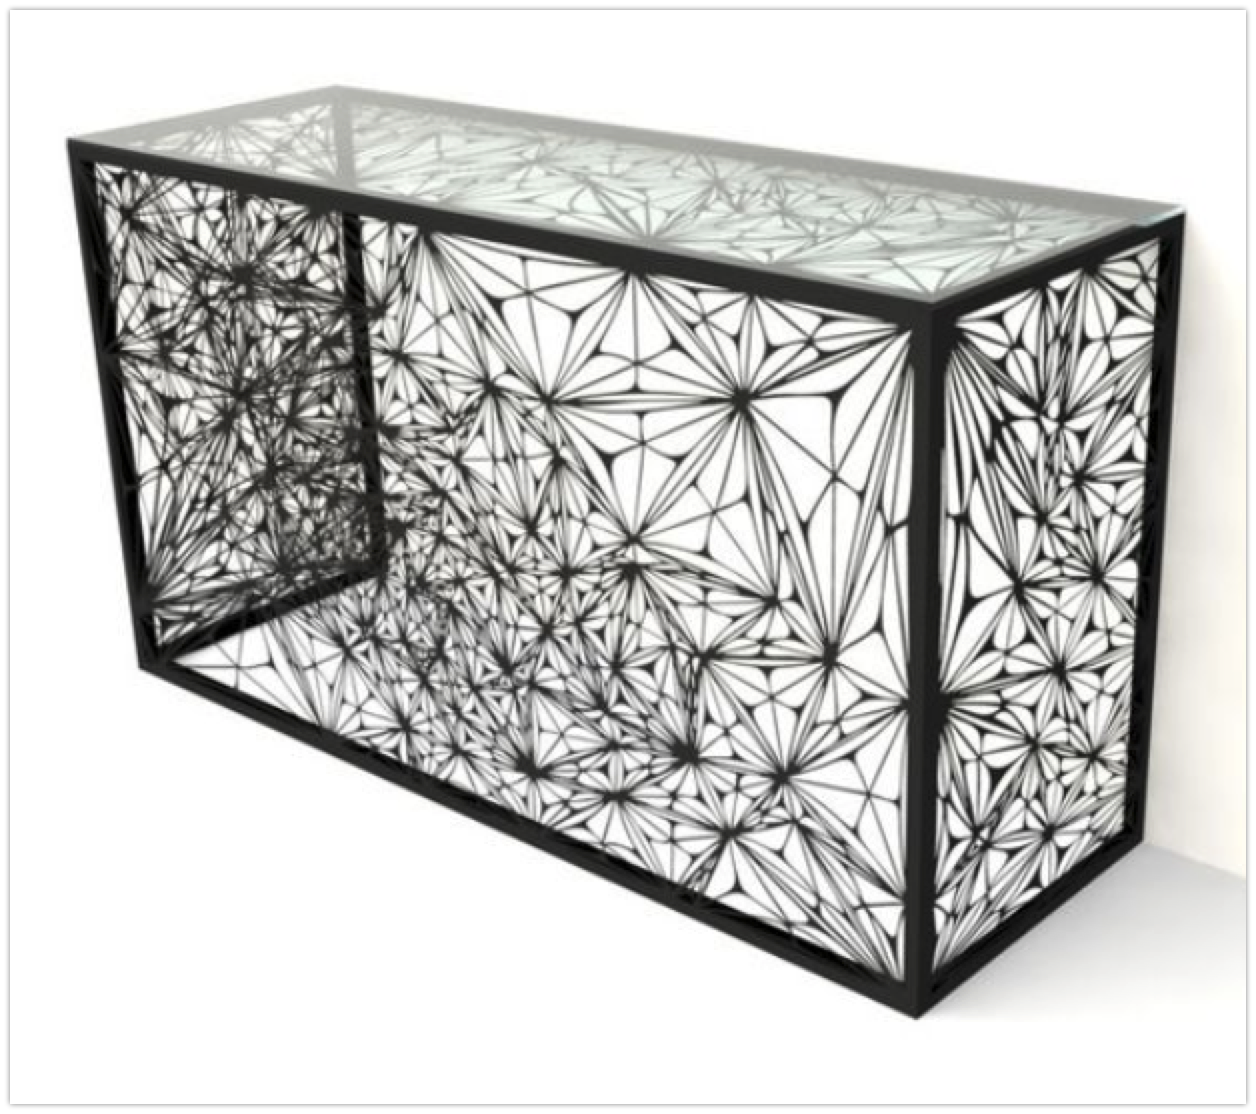 modern-metal-black-console-table-with-ornate-pattern